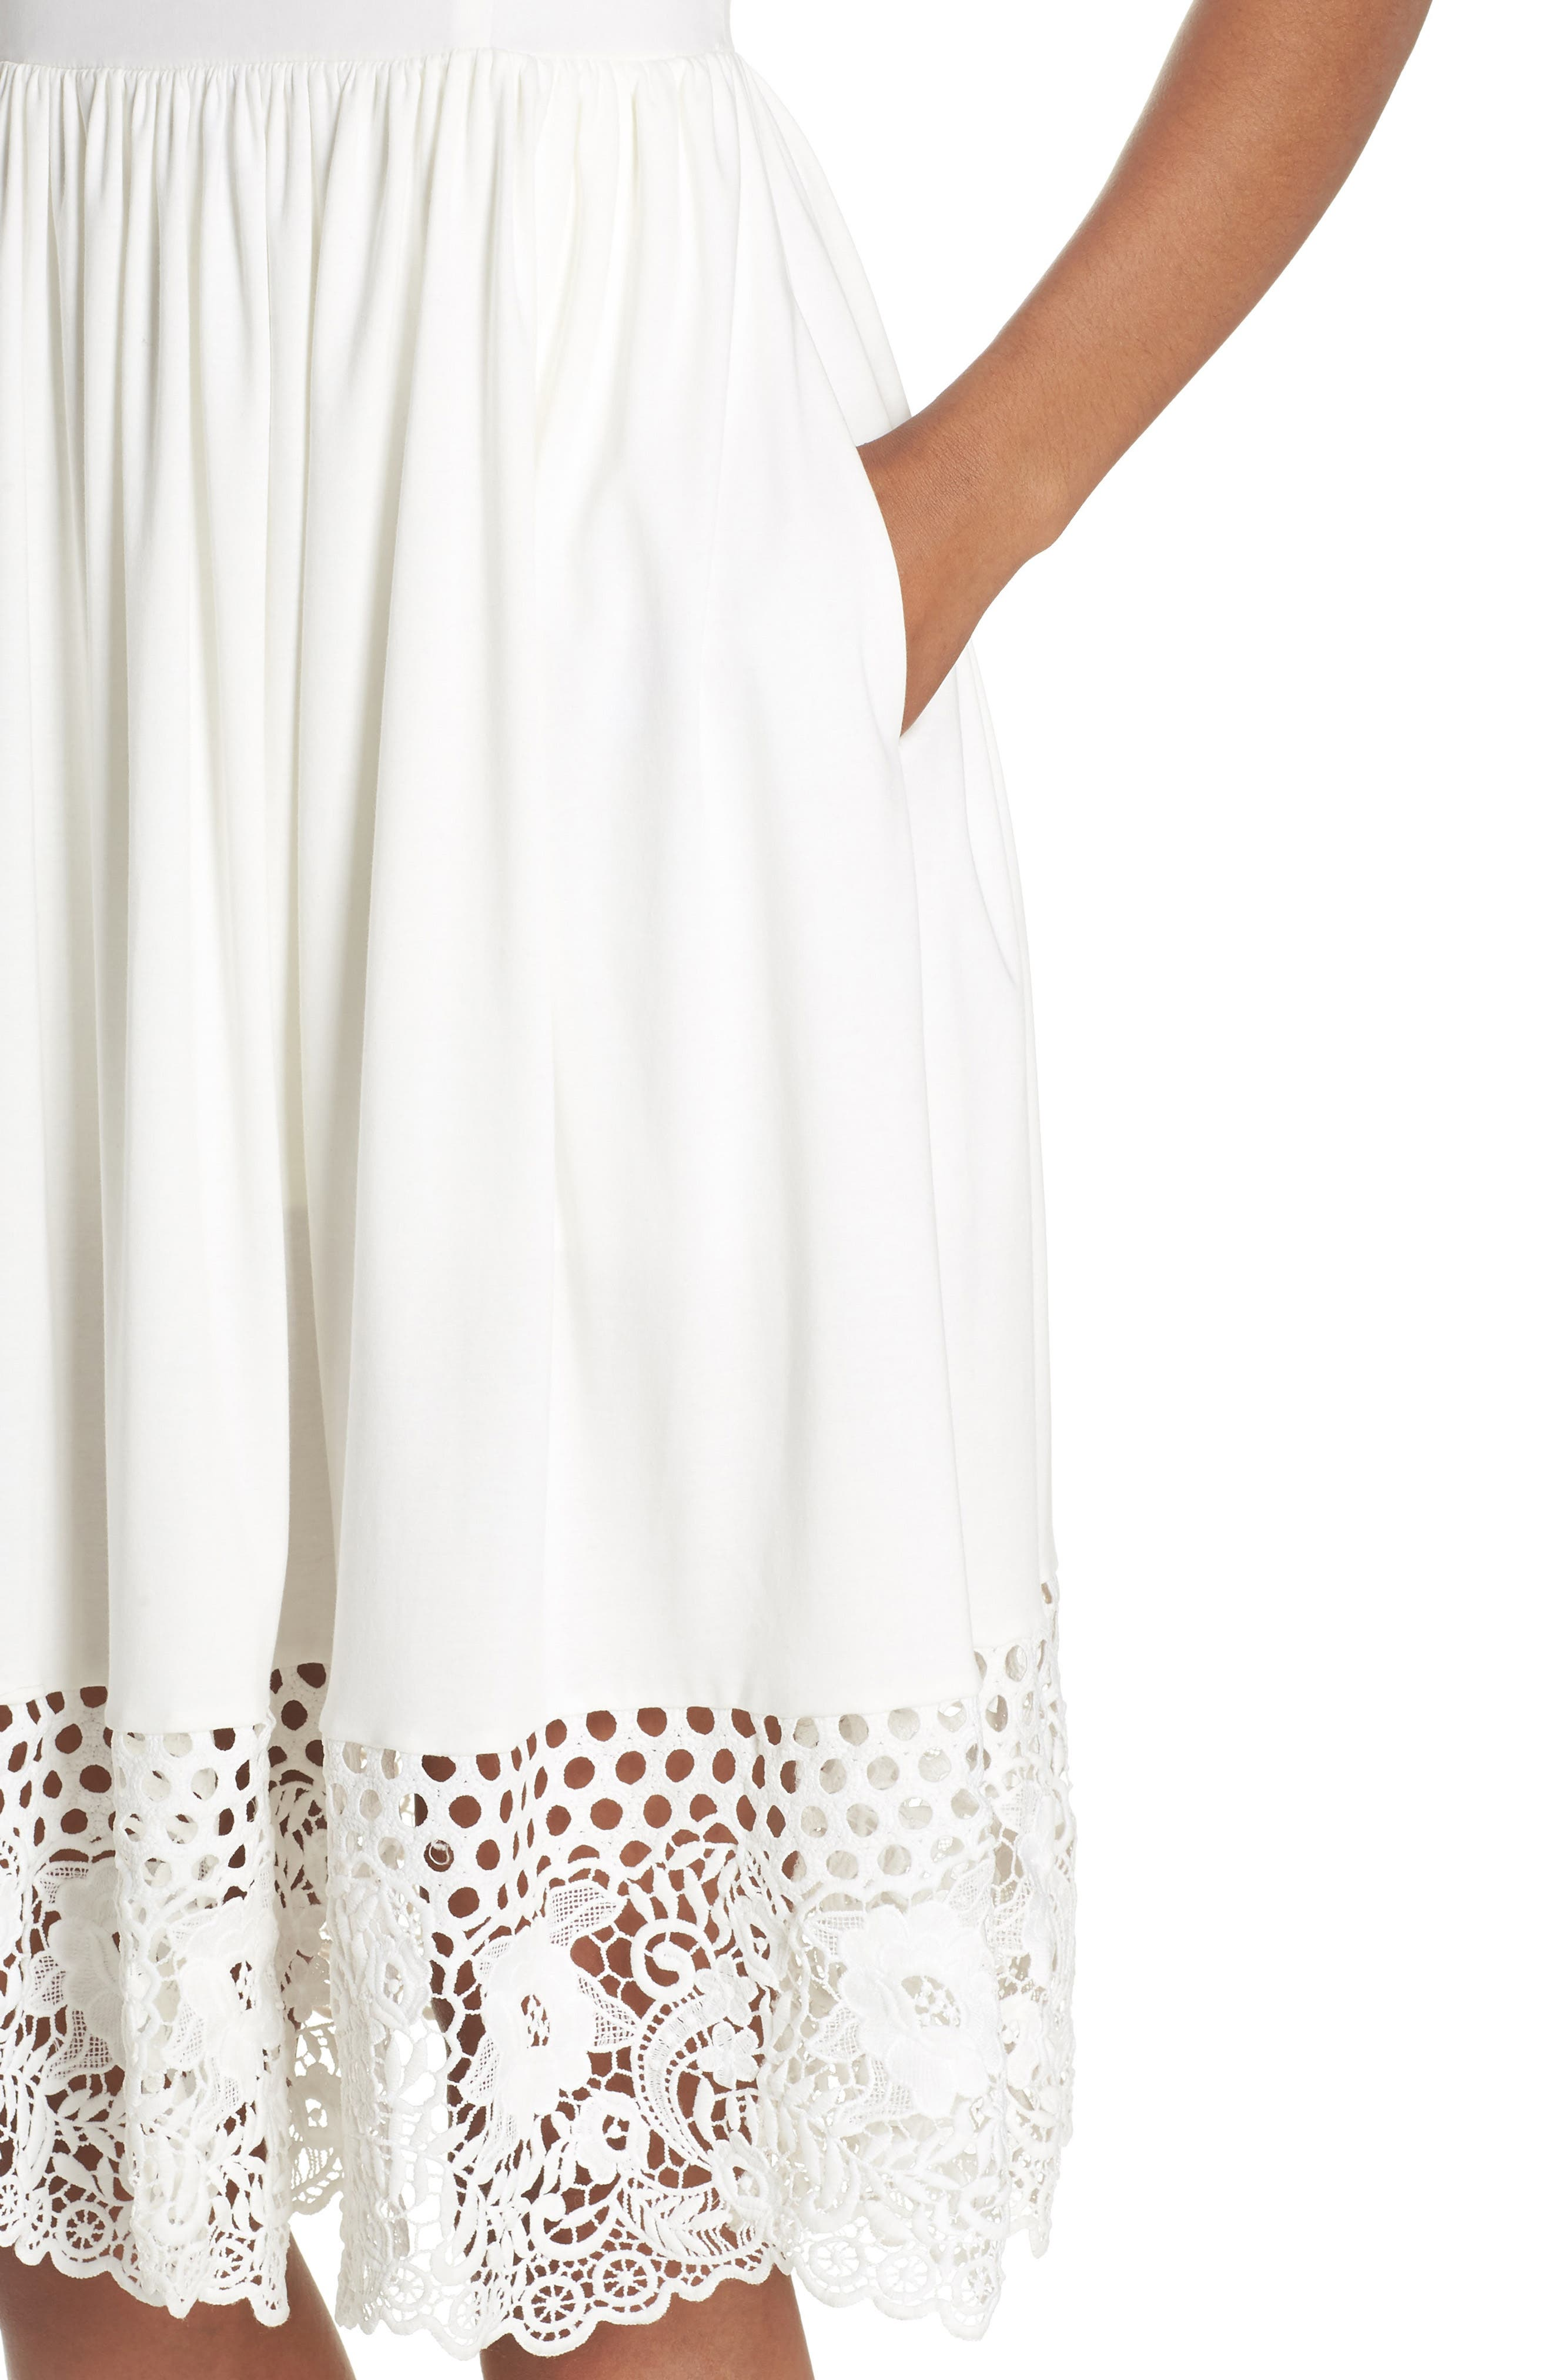 Salerno Lace Trim Jersey Dress,                             Alternate thumbnail 4, color,                             Summer White/ Summer White